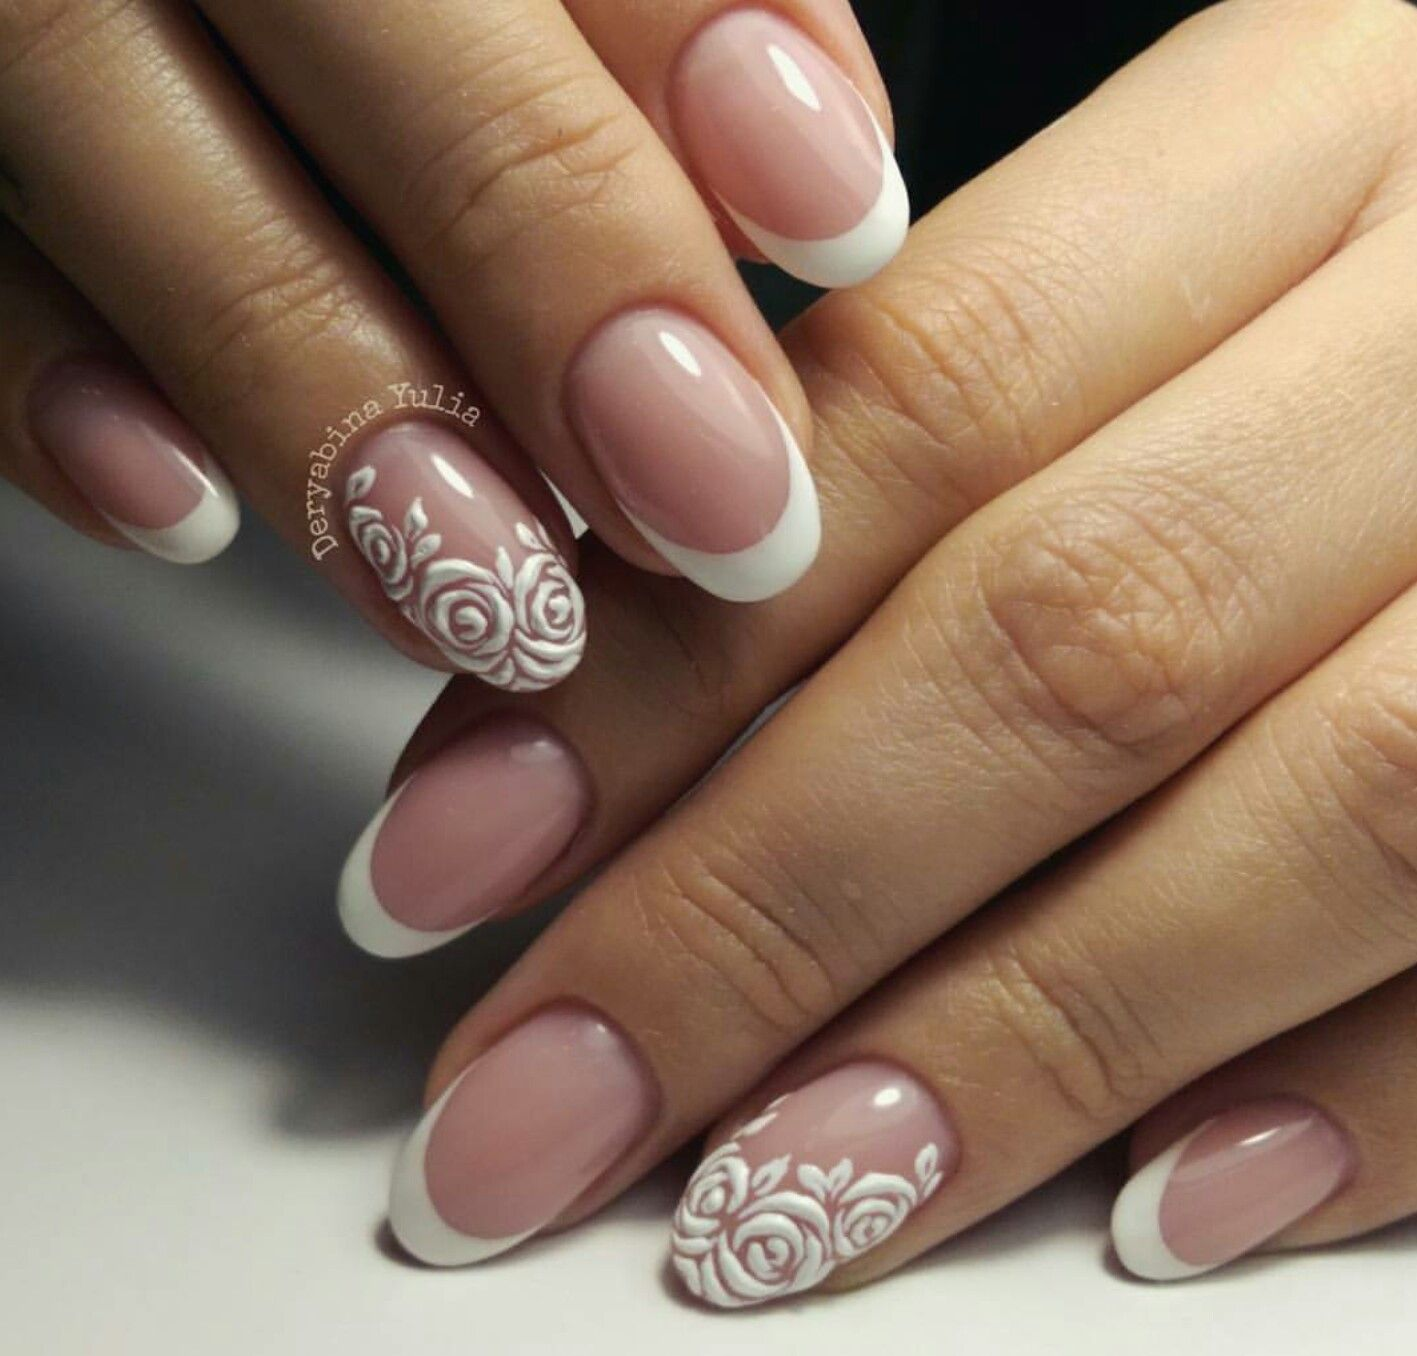 Pin by Jessica Miner on Nails | Pinterest | Manicure